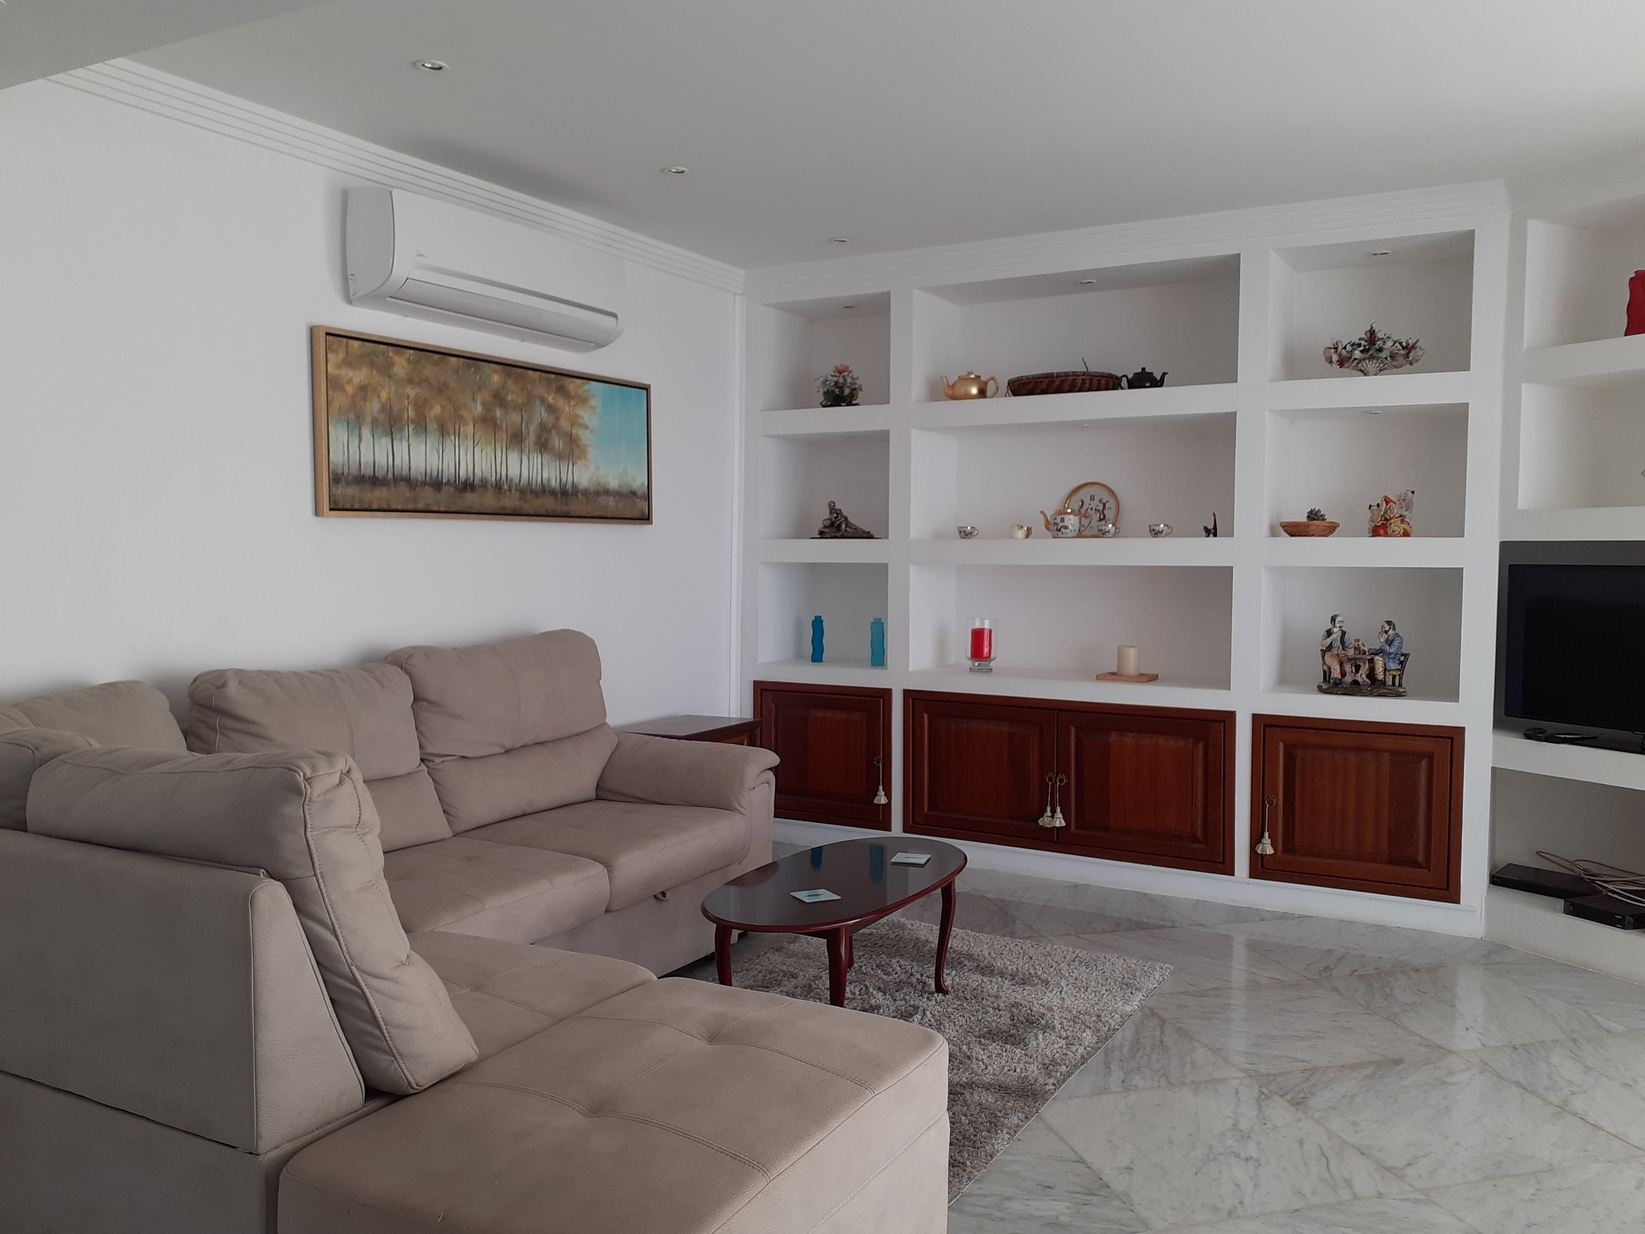 3 bed Villa For Rent in Mellieha, Mellieha - thumb 6